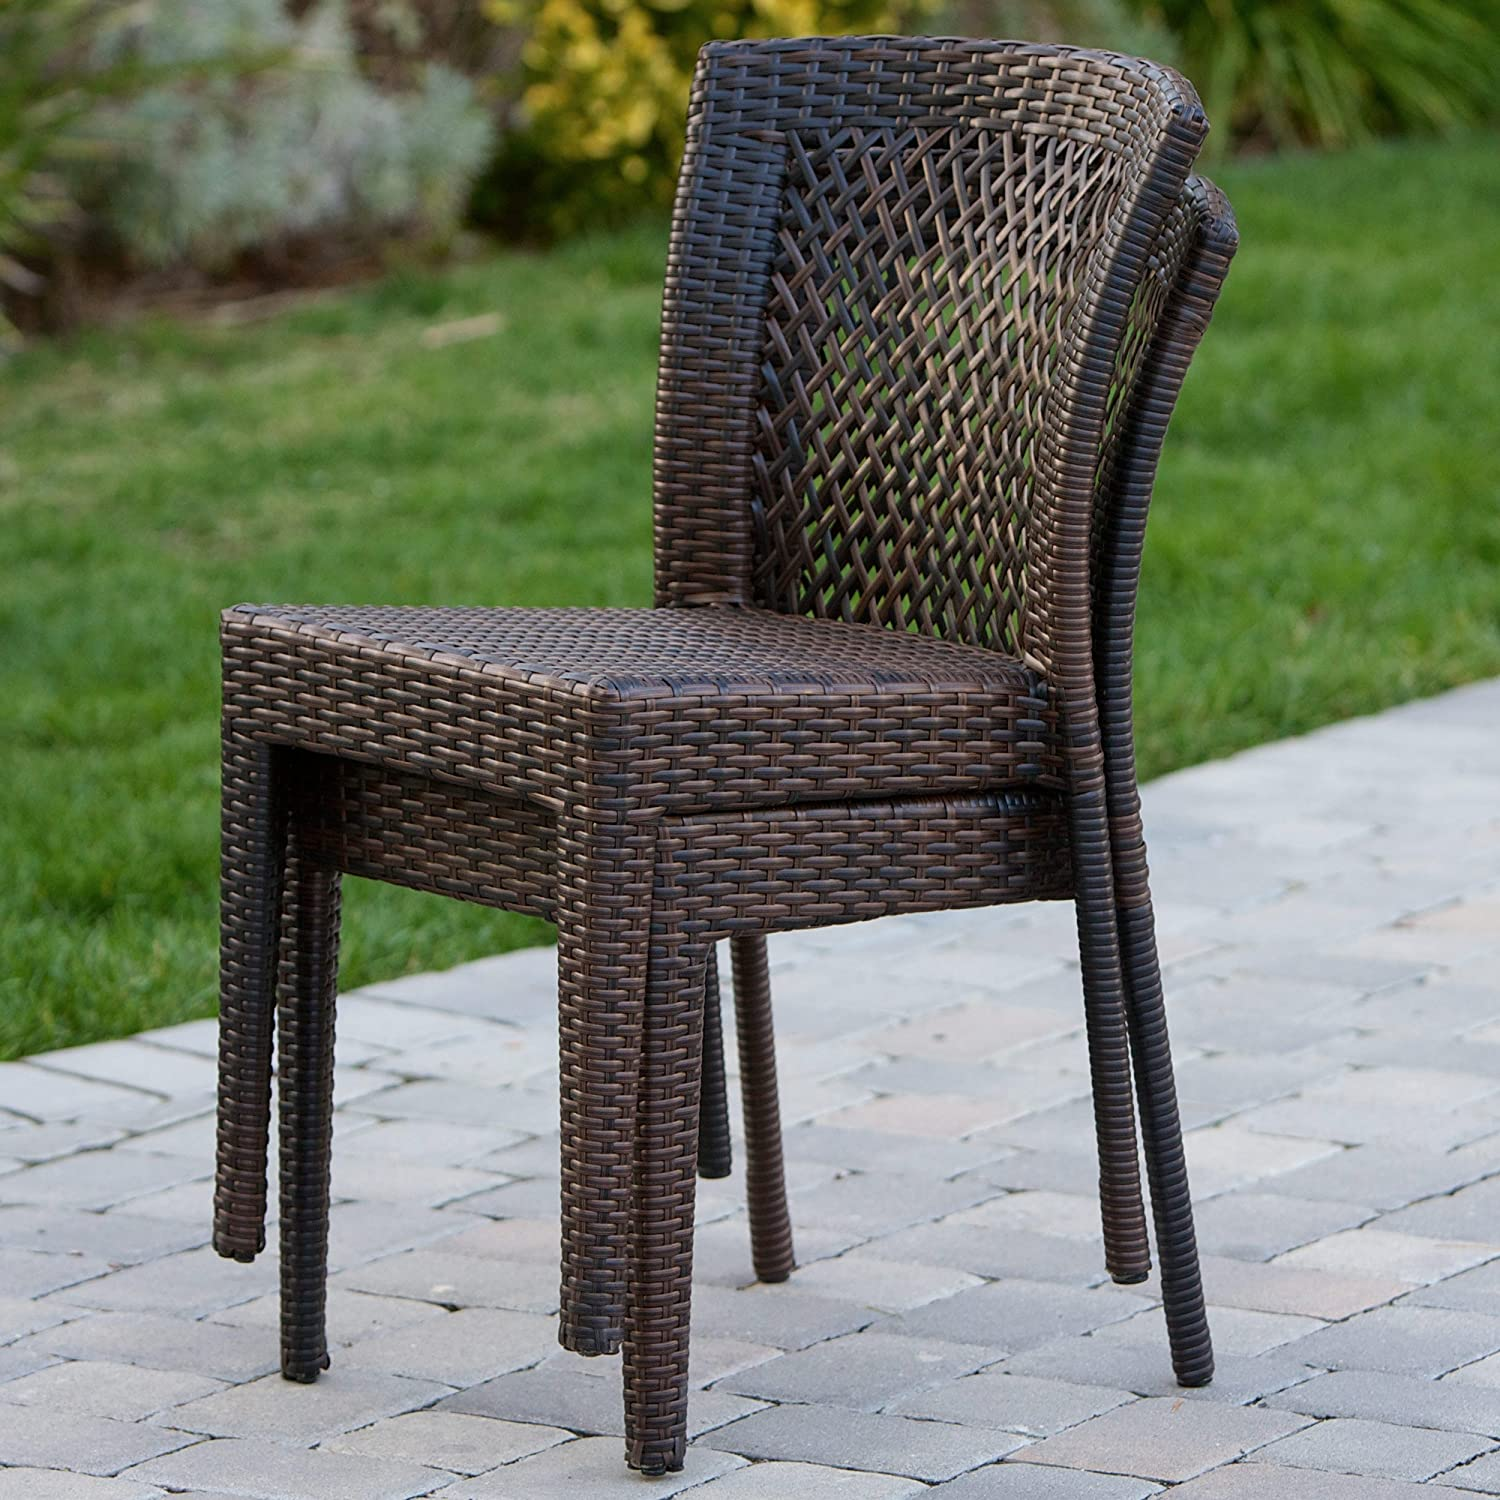 amazoncom dana point outdoor patio furniture brown wicker chairs set of 2 patio dining chairs patio lawn u0026 garden - Cheap Patio Sets